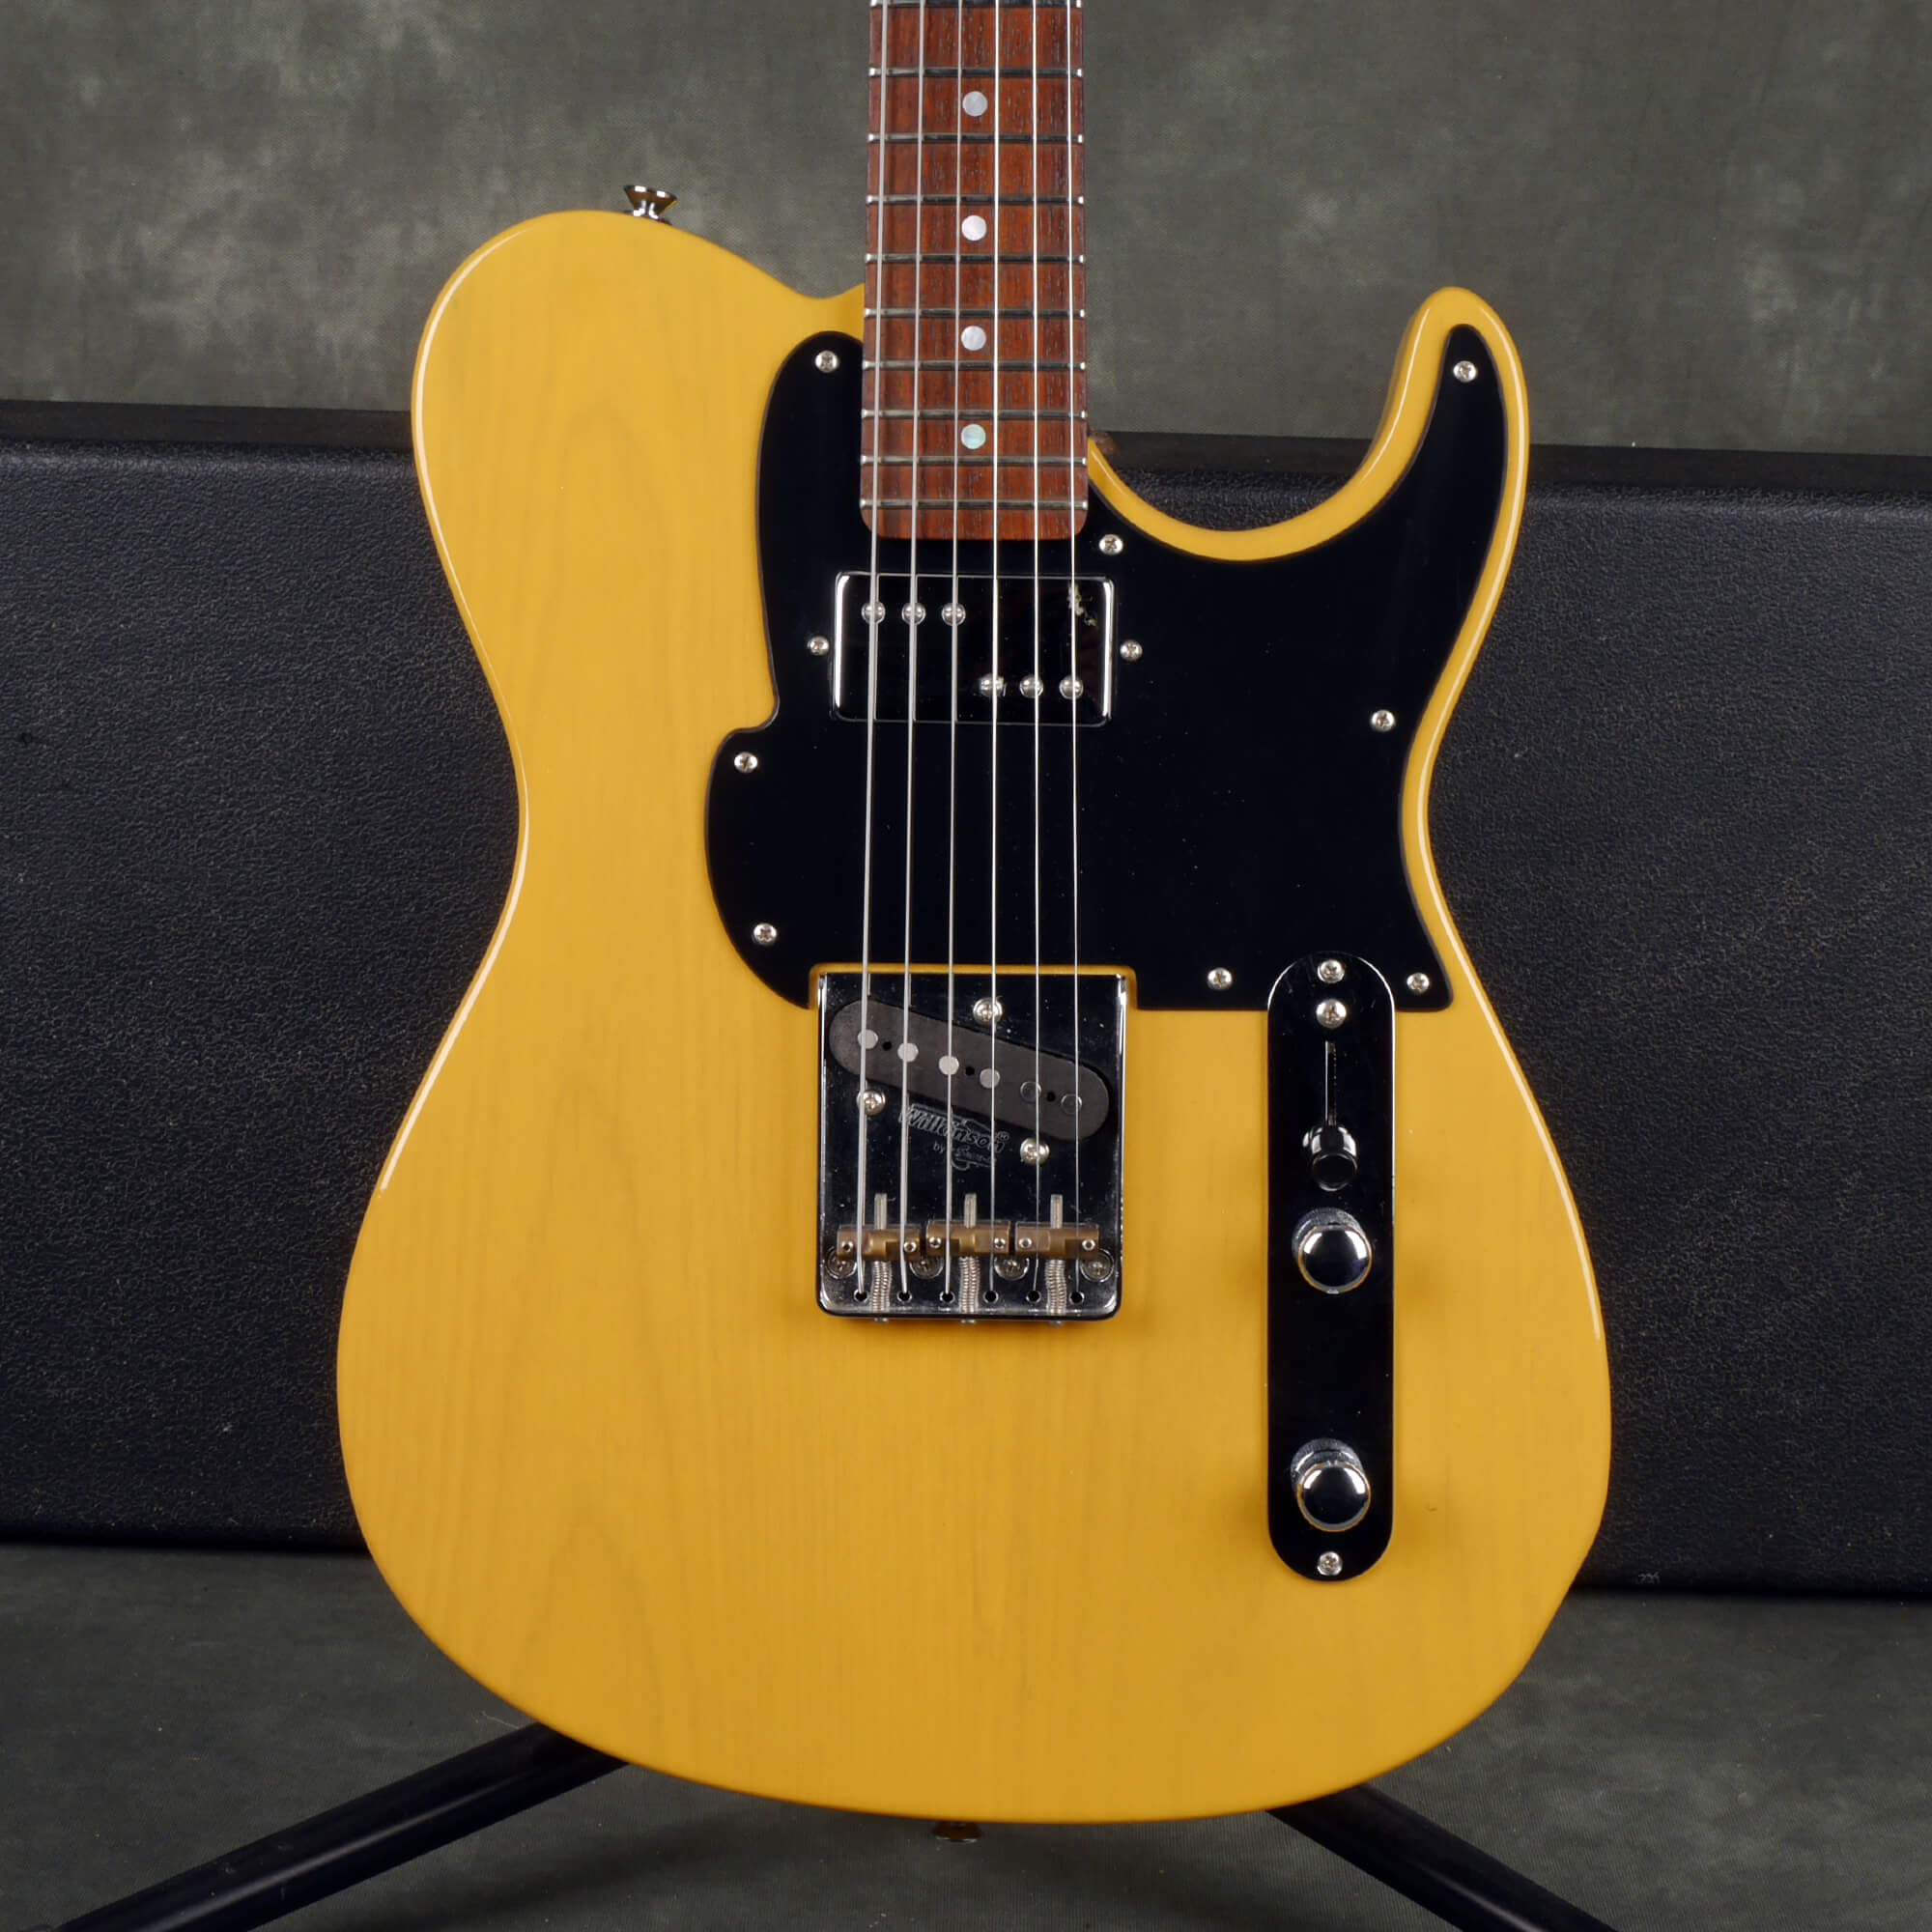 Fret King Country Squire - Butterscotch w/Hard Case - 2nd Hand